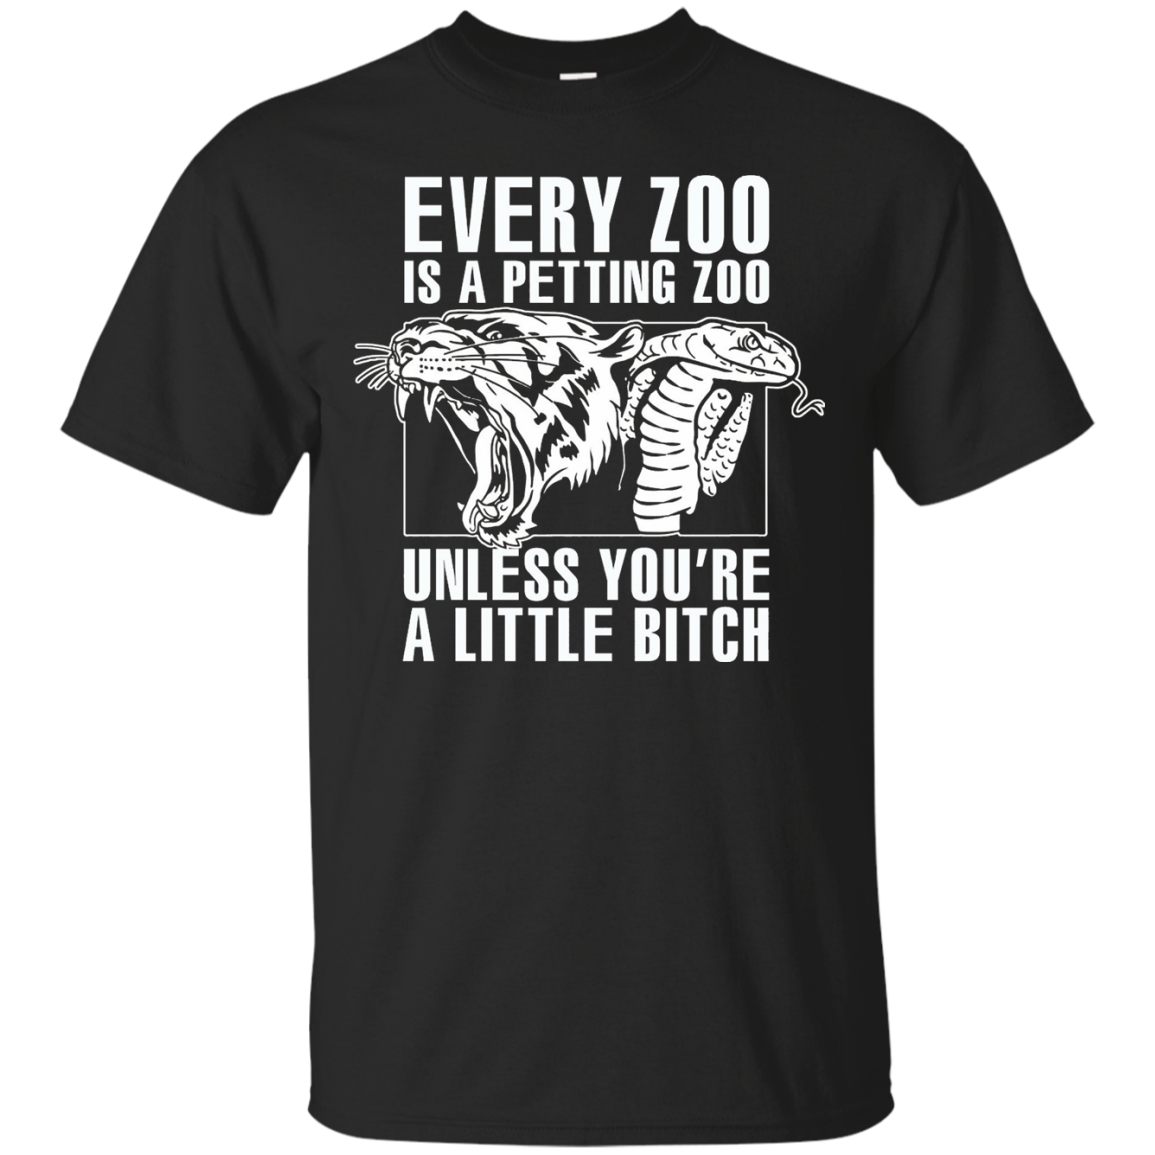 Every Zoo is a Petting Zoo Shirt Unless you're a bitch - T-Shirt